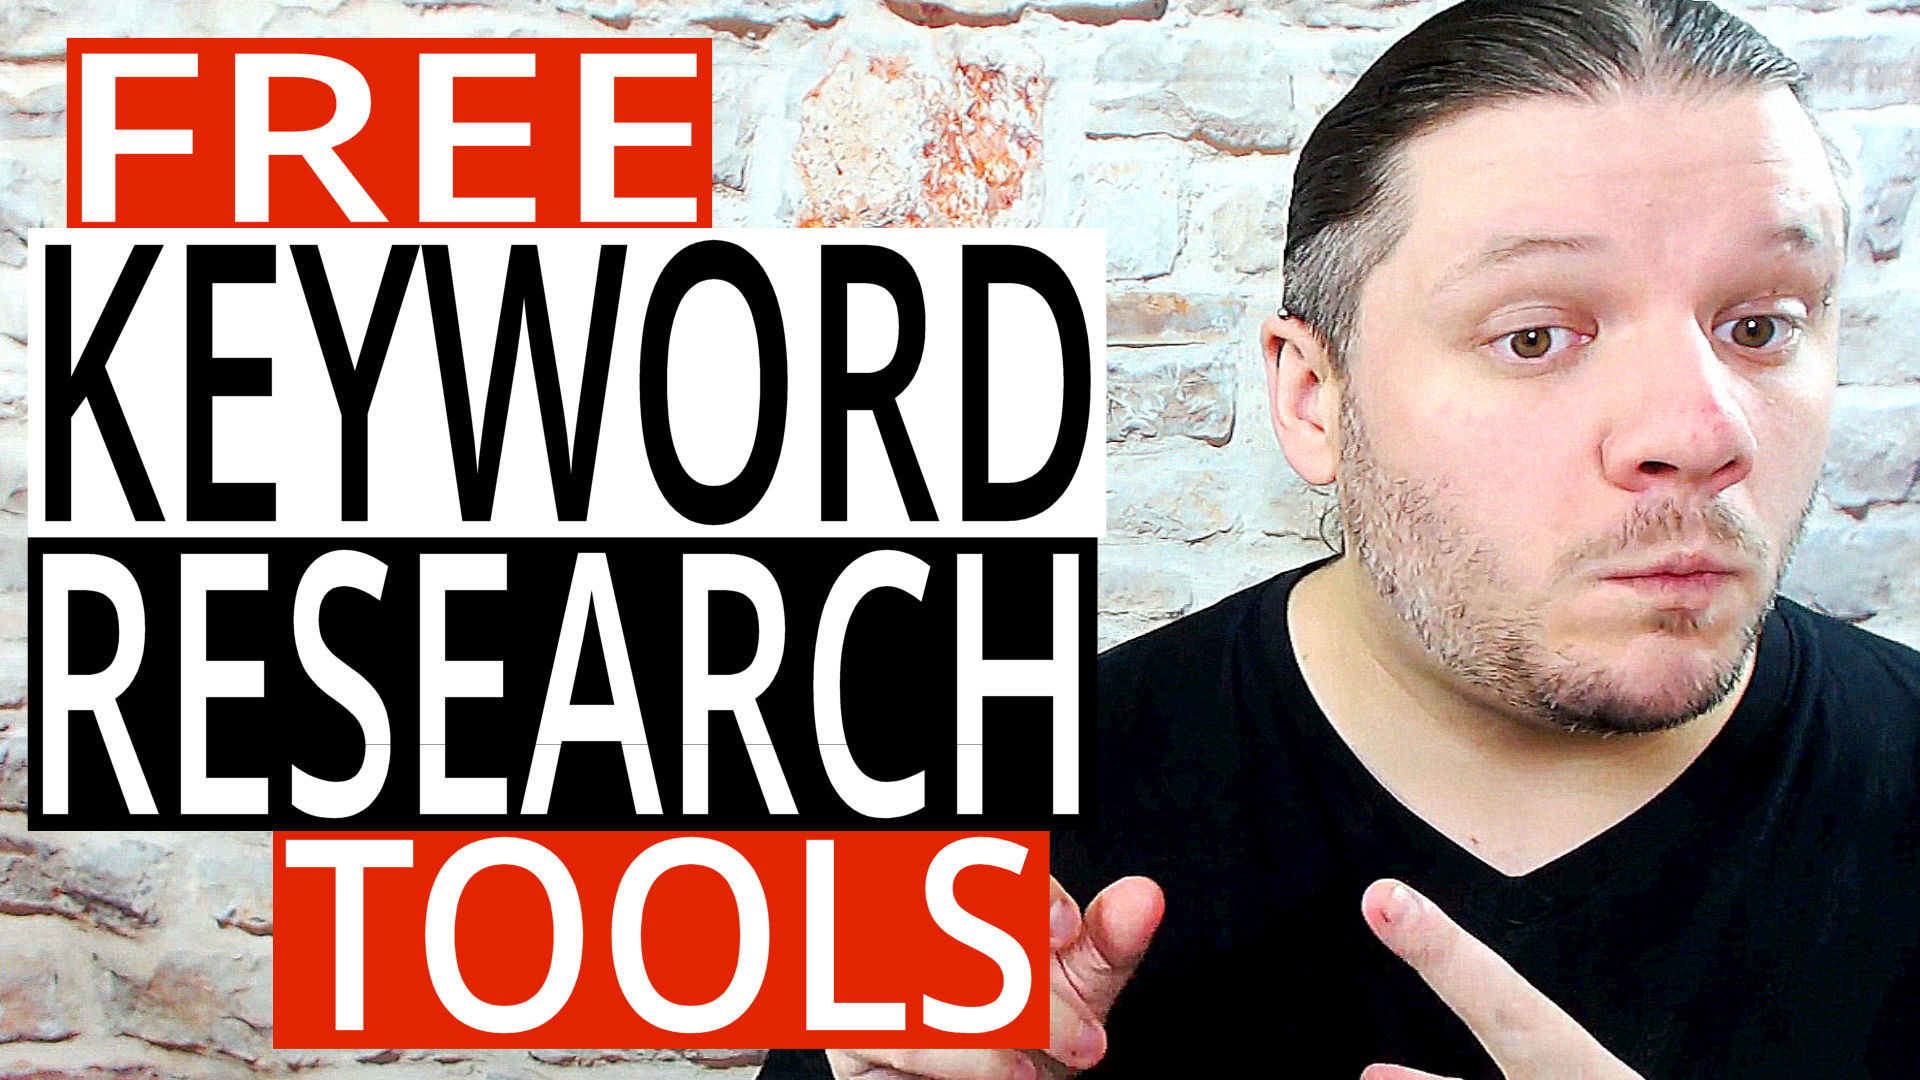 how to do keyword research for youtube, how to do keyword research for youtube 2018, how to do keyword research for youtube video marketing, how to do keyword research for youtube videos, keyword, keyword research, keyword research 2018, keyword research tool, keyword research tutorial, keyword research youtube, keywords, seo, video seo, youtube keyword research, youtube keyword research 2018, youtube keyword research tool, youtube keyword research tool for video seo, youtube keyword search, youtube keyword tool, youtube seo